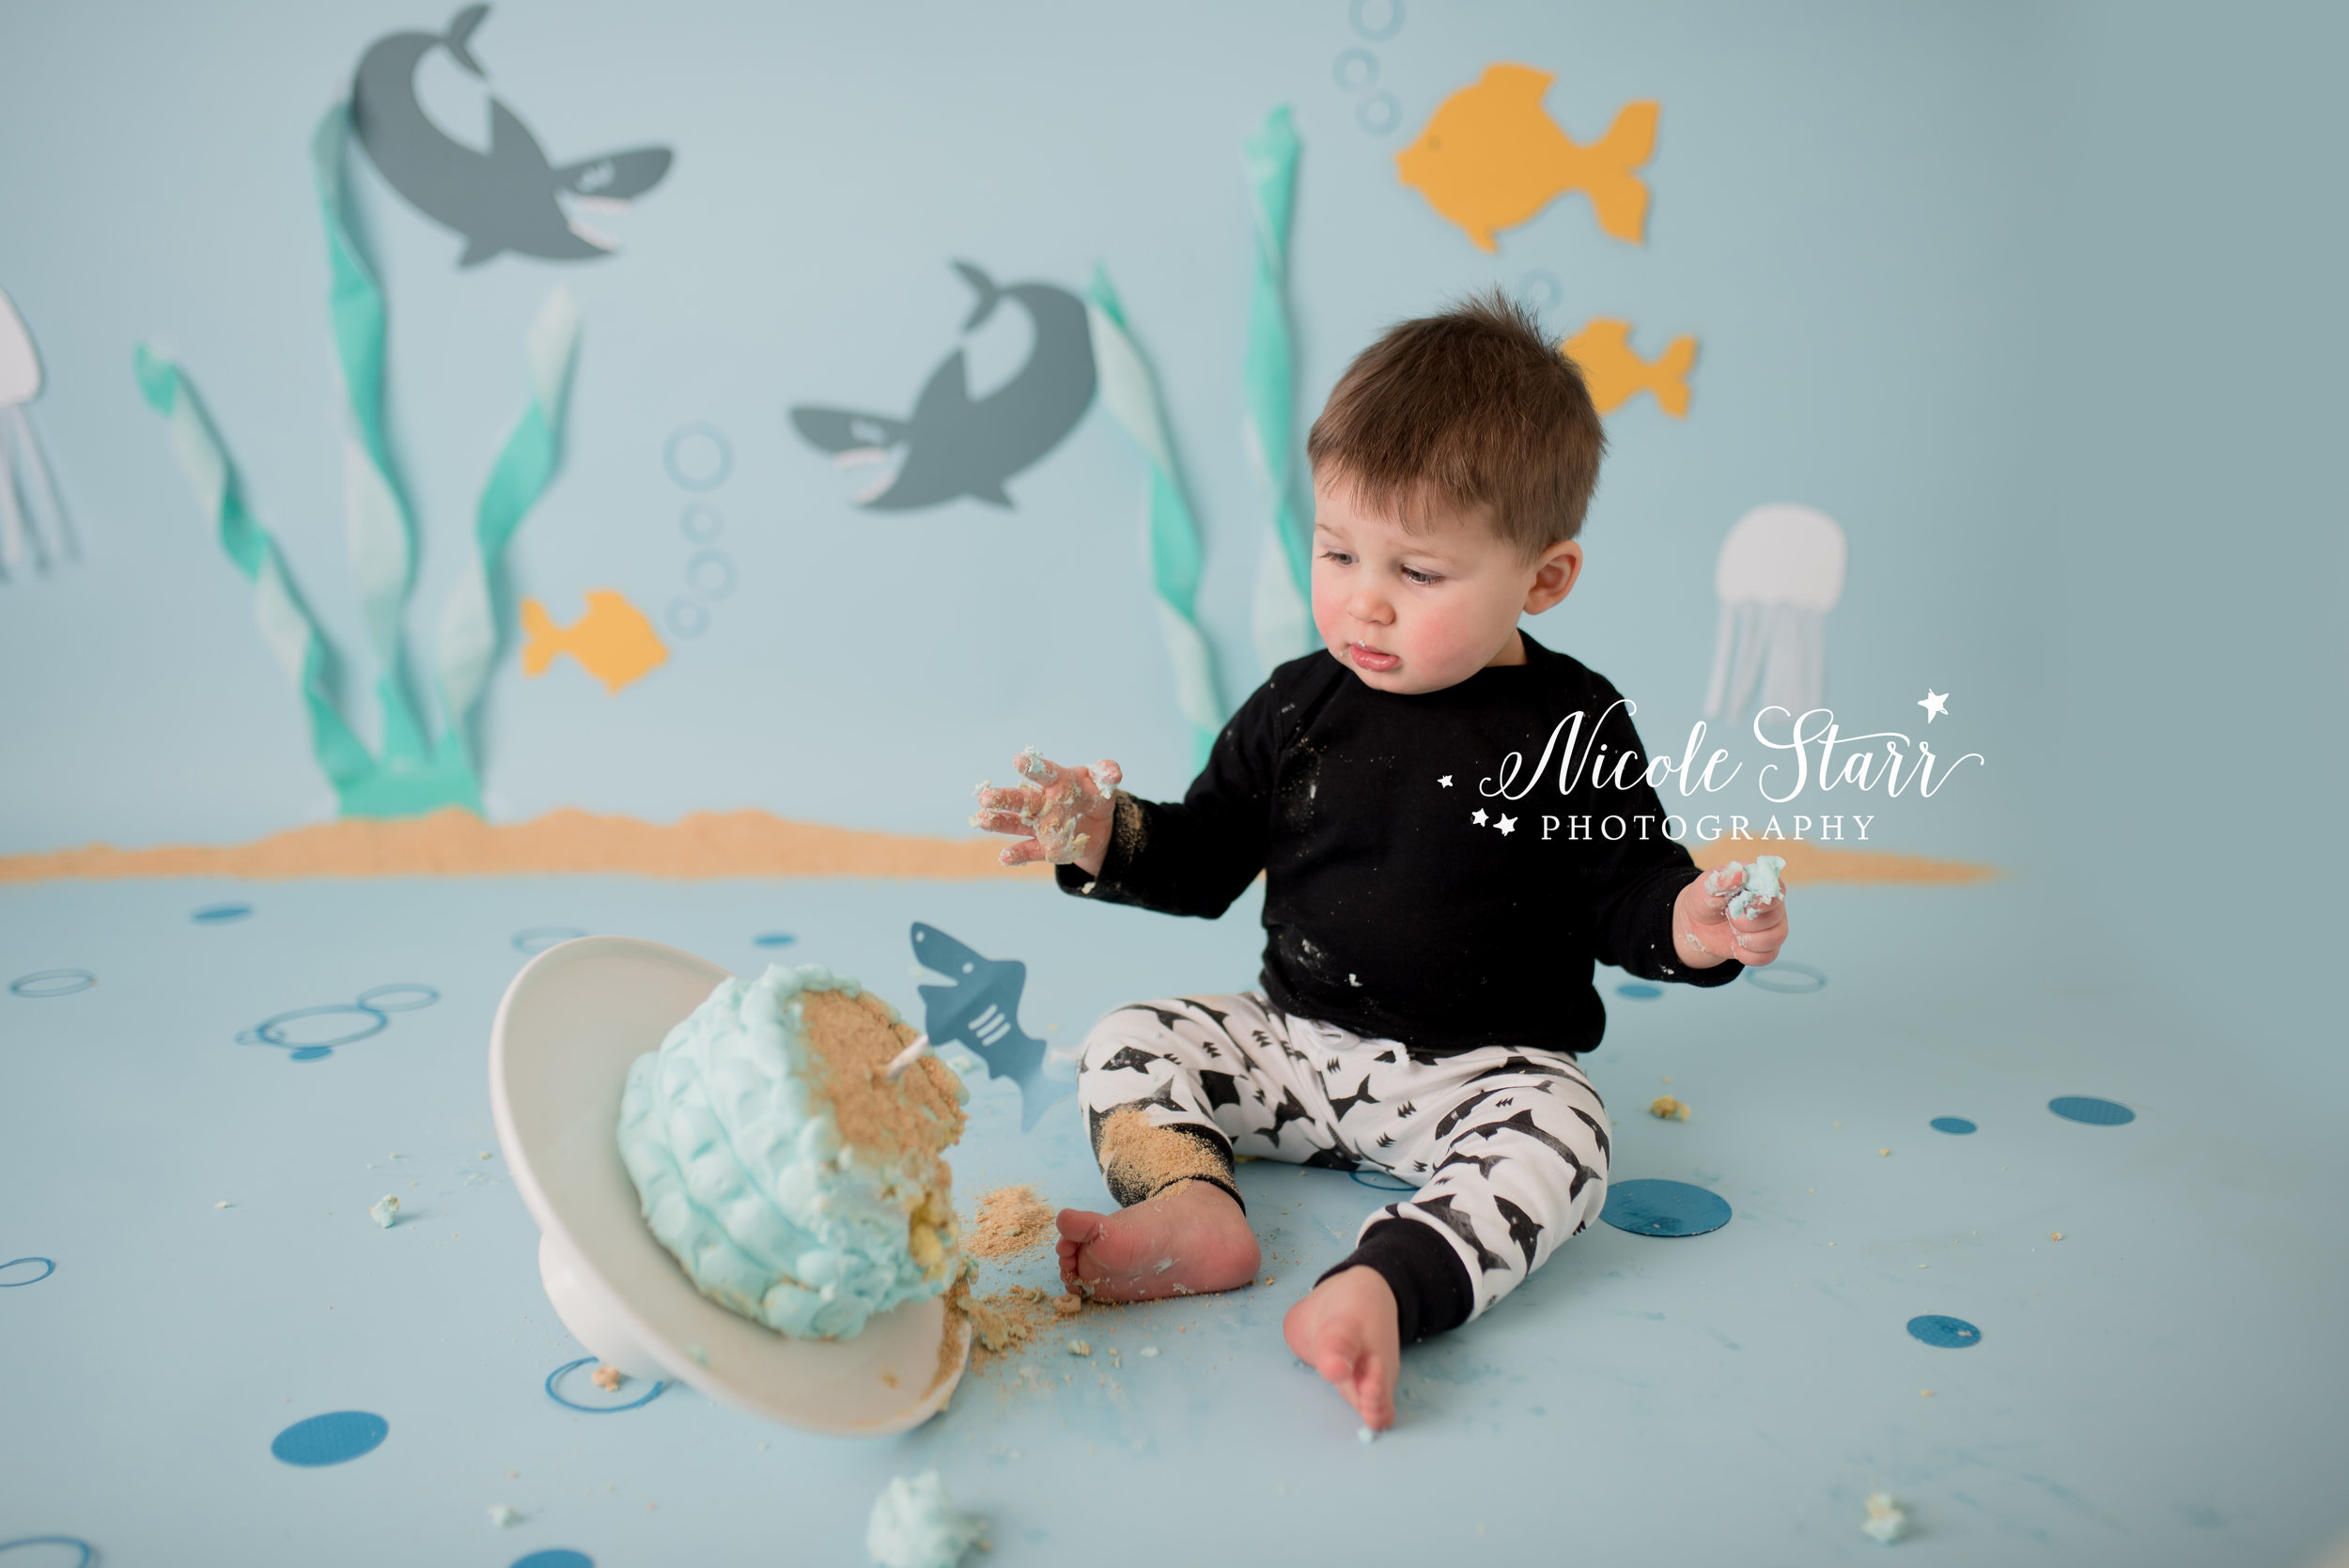 Nicole Starr Photography | Saratoga Springs Cake Smash Photographer | Boston Cake Smash Photographer | Saratoga Springs Family Photographer | Boston Family Photographer Delmar NY Cake Smash Photographer | Loudonville NY Cake Smash Photographer | Baby Shark Cake smash | baby shark inspired cake smash